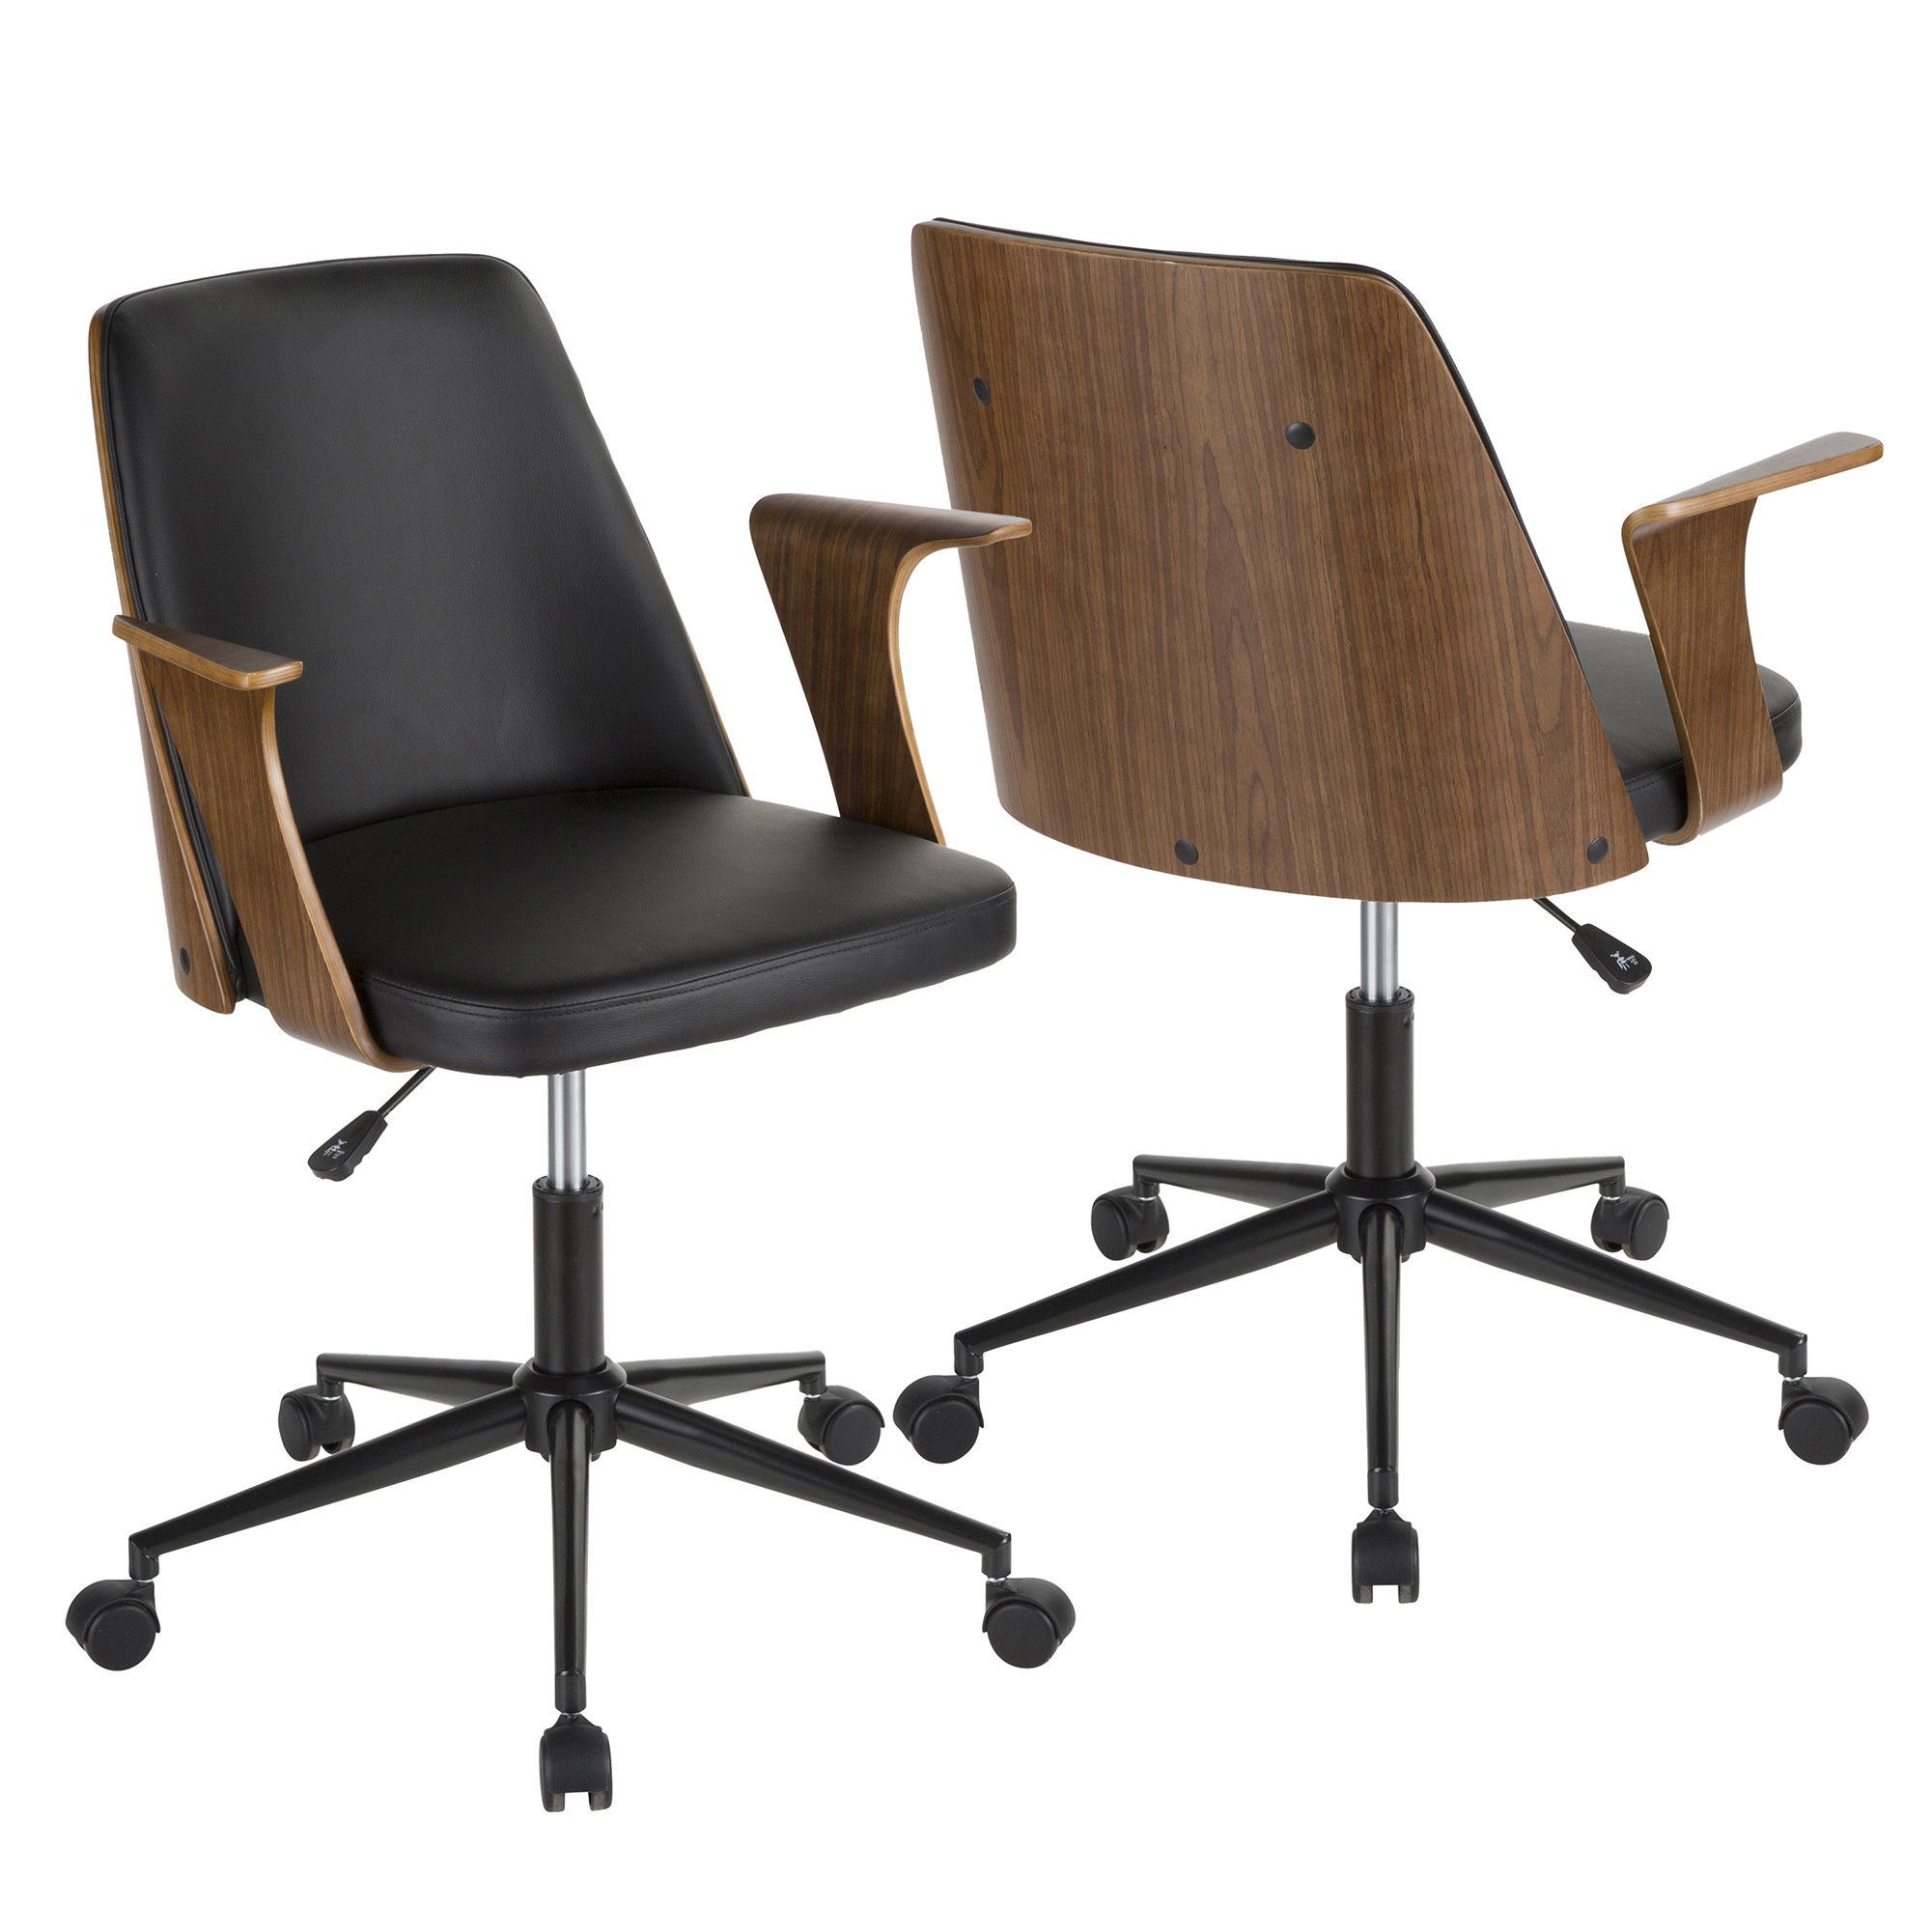 Verdana Mid Century Modern Office Chair In Walnut Wood Black Faux Leather Lumisource Oc Vrdna Wl Bk